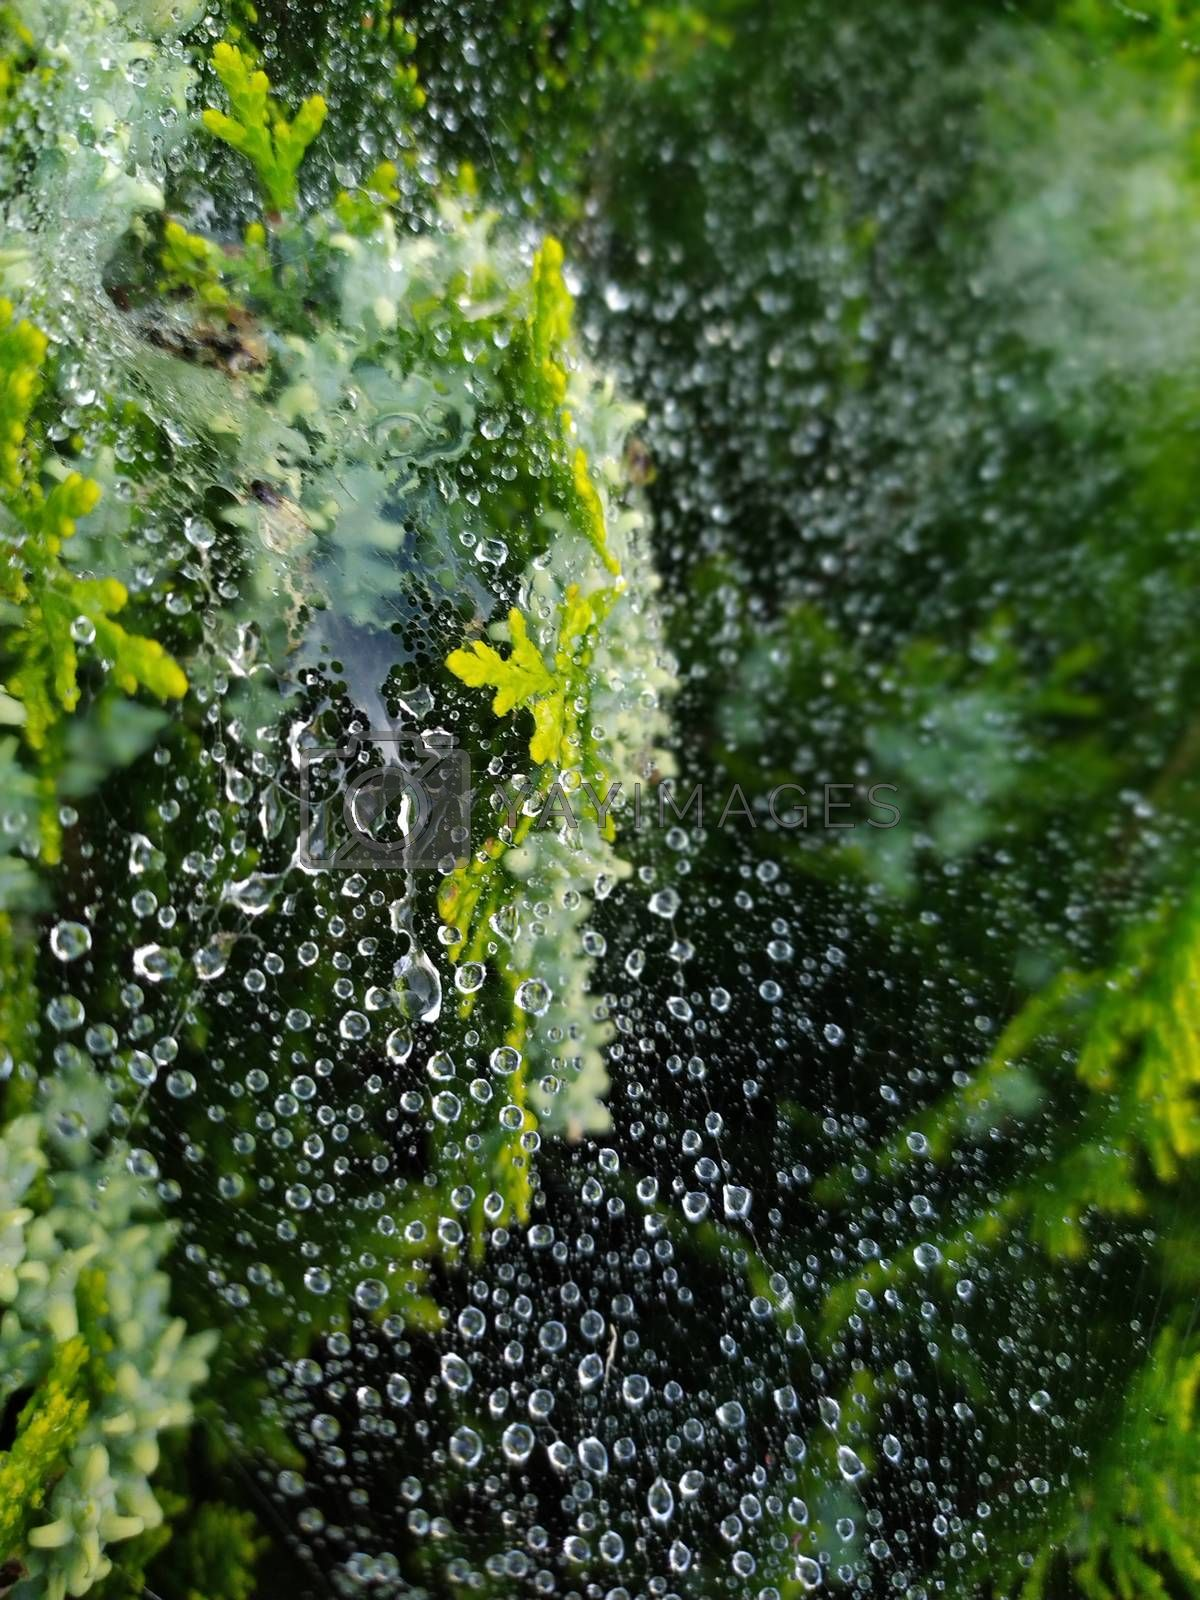 droplets on spider web by sagasan